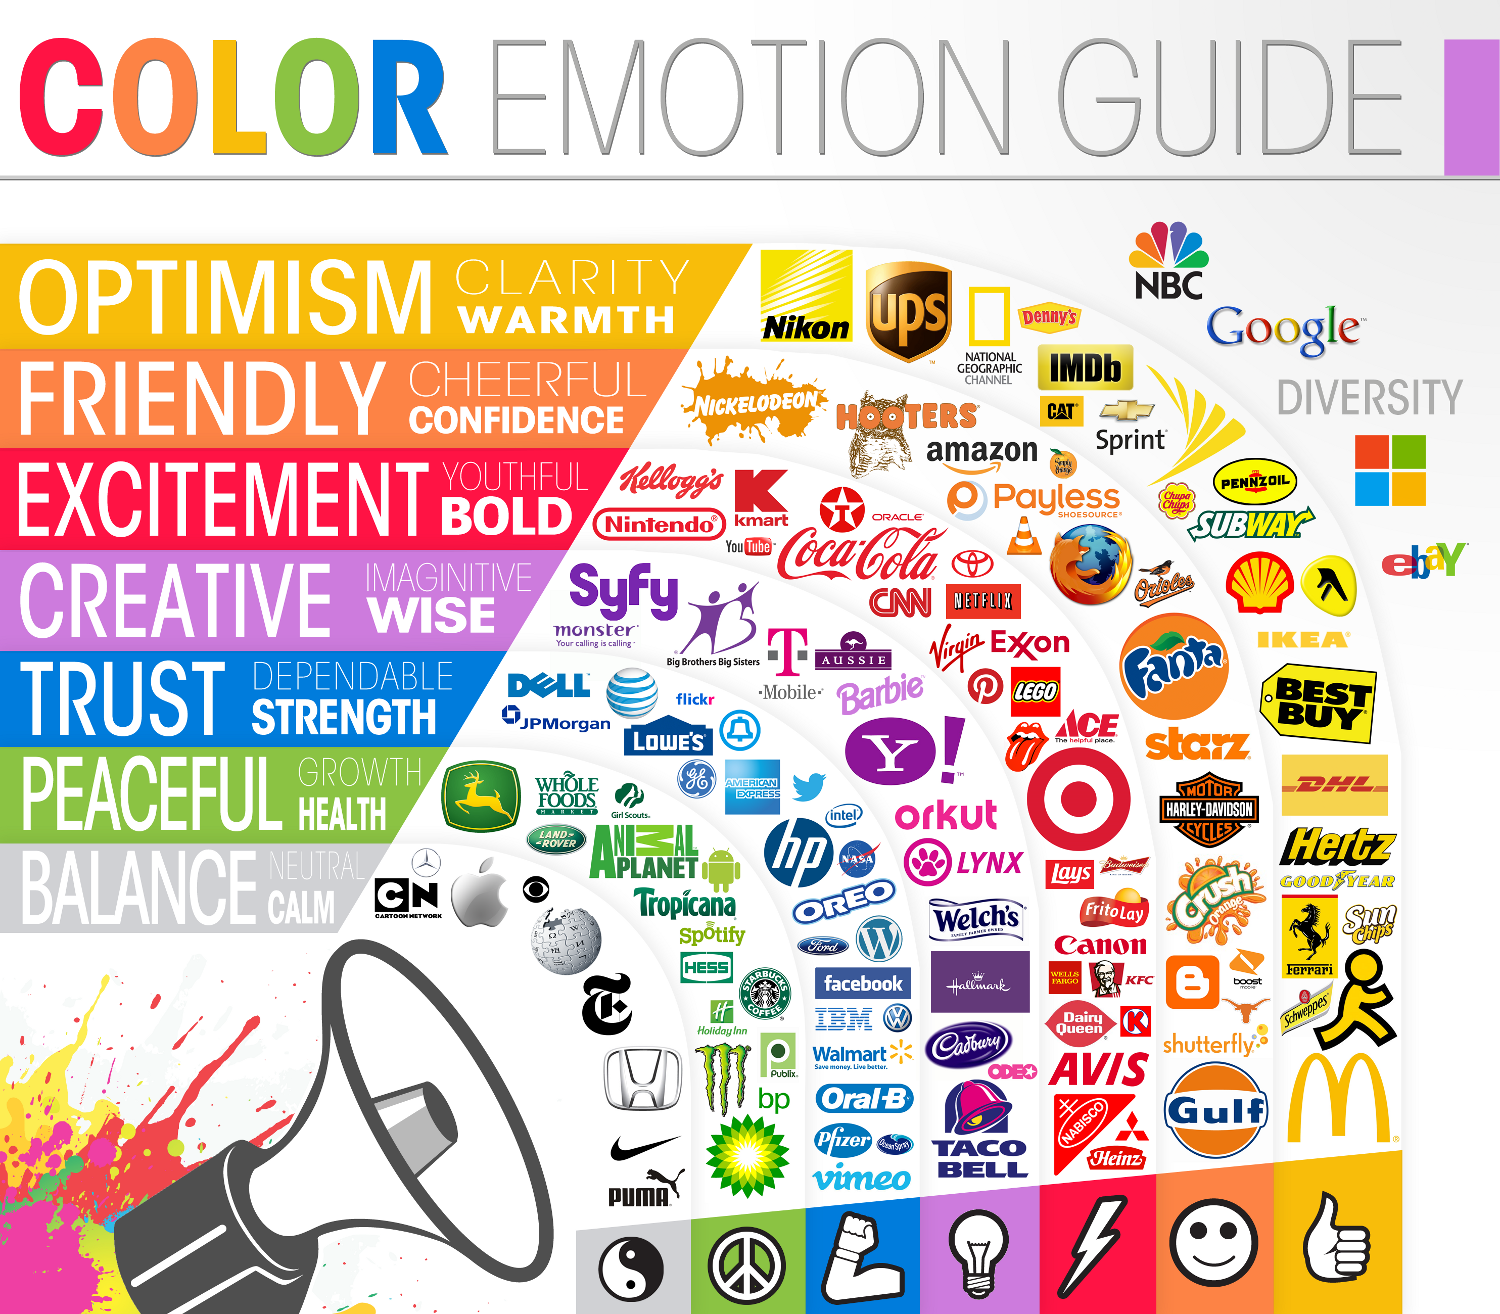 Color Emotion Marketing Guide